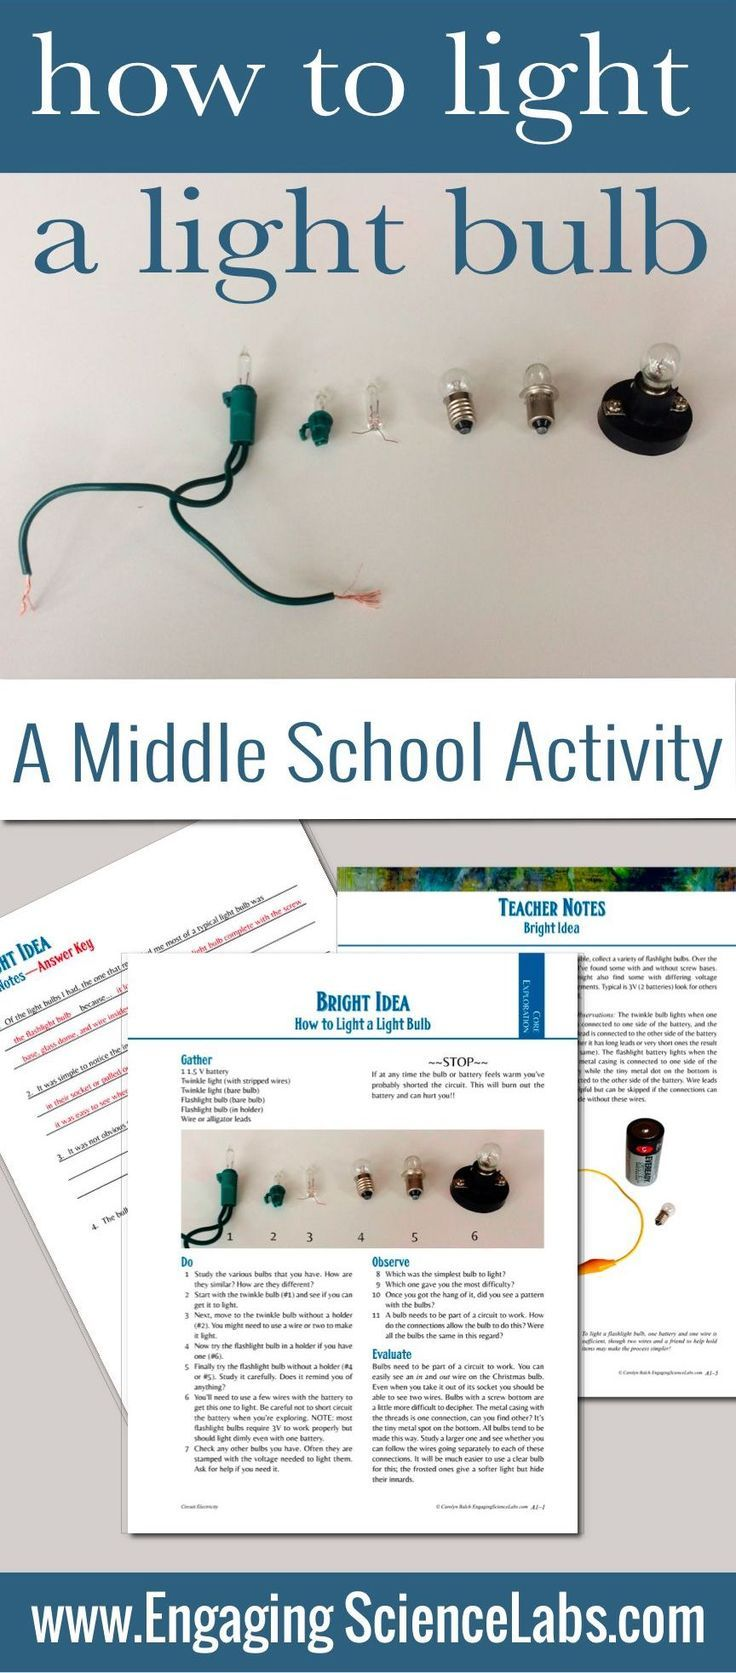 Electric Circuits Introduction Light A Bulb Hands On Lab Activity Circuit Using Flashlight Electronic Projects Lighting Variety Of Bulbs Is Great Way To Study Electricity And Middle School Students Will Love This Investigation